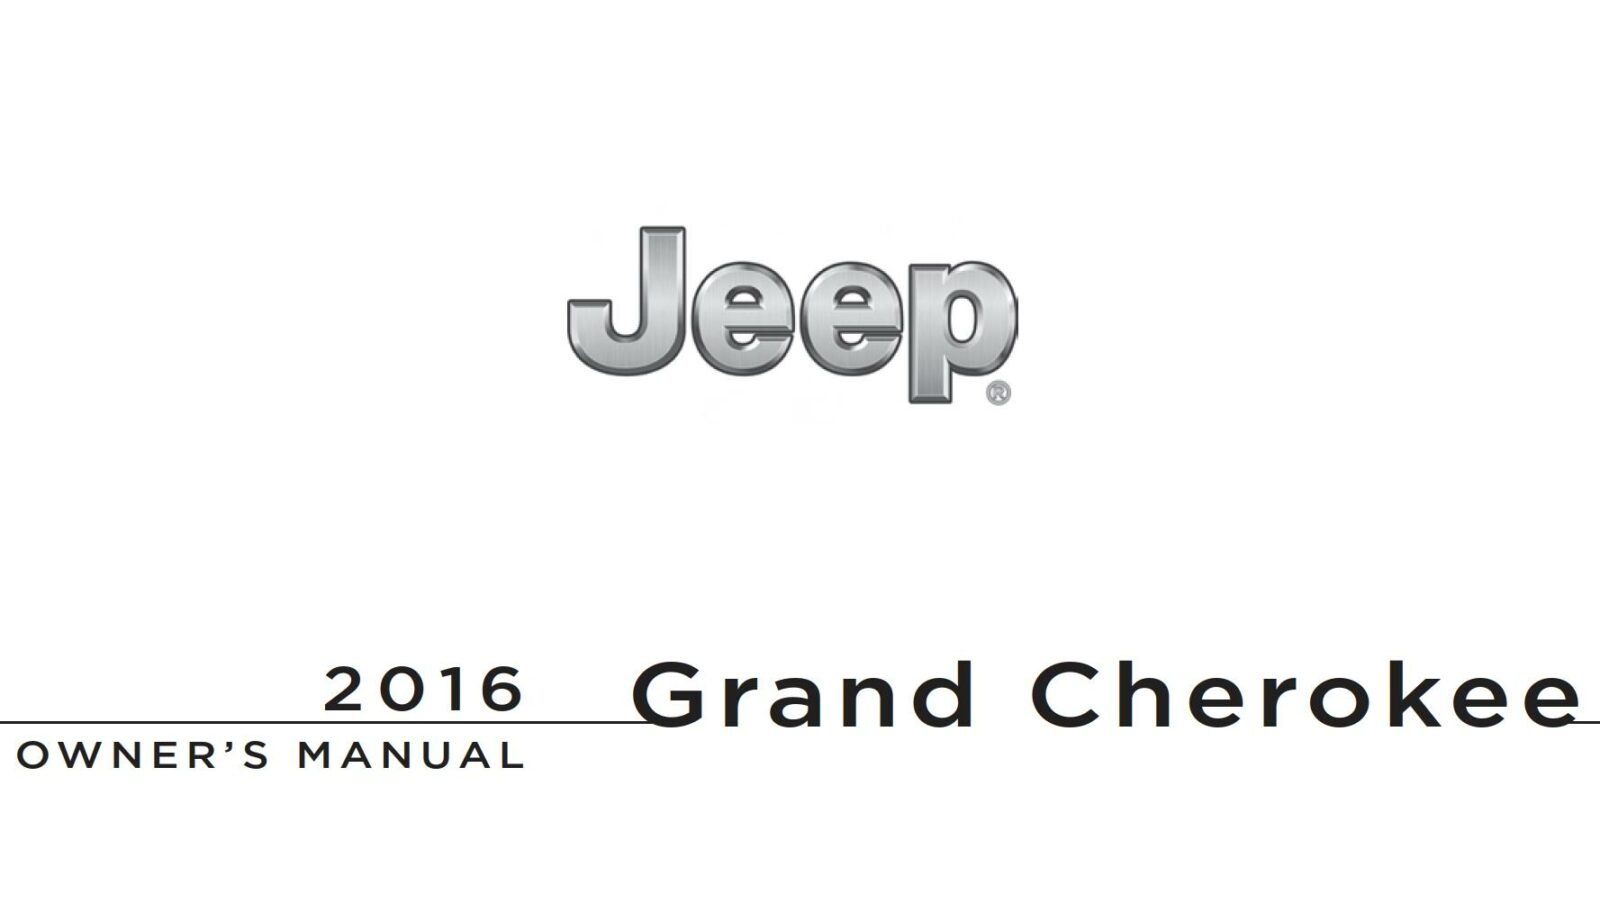 Jeep Grand Cherokee 2016 Owner's Manual